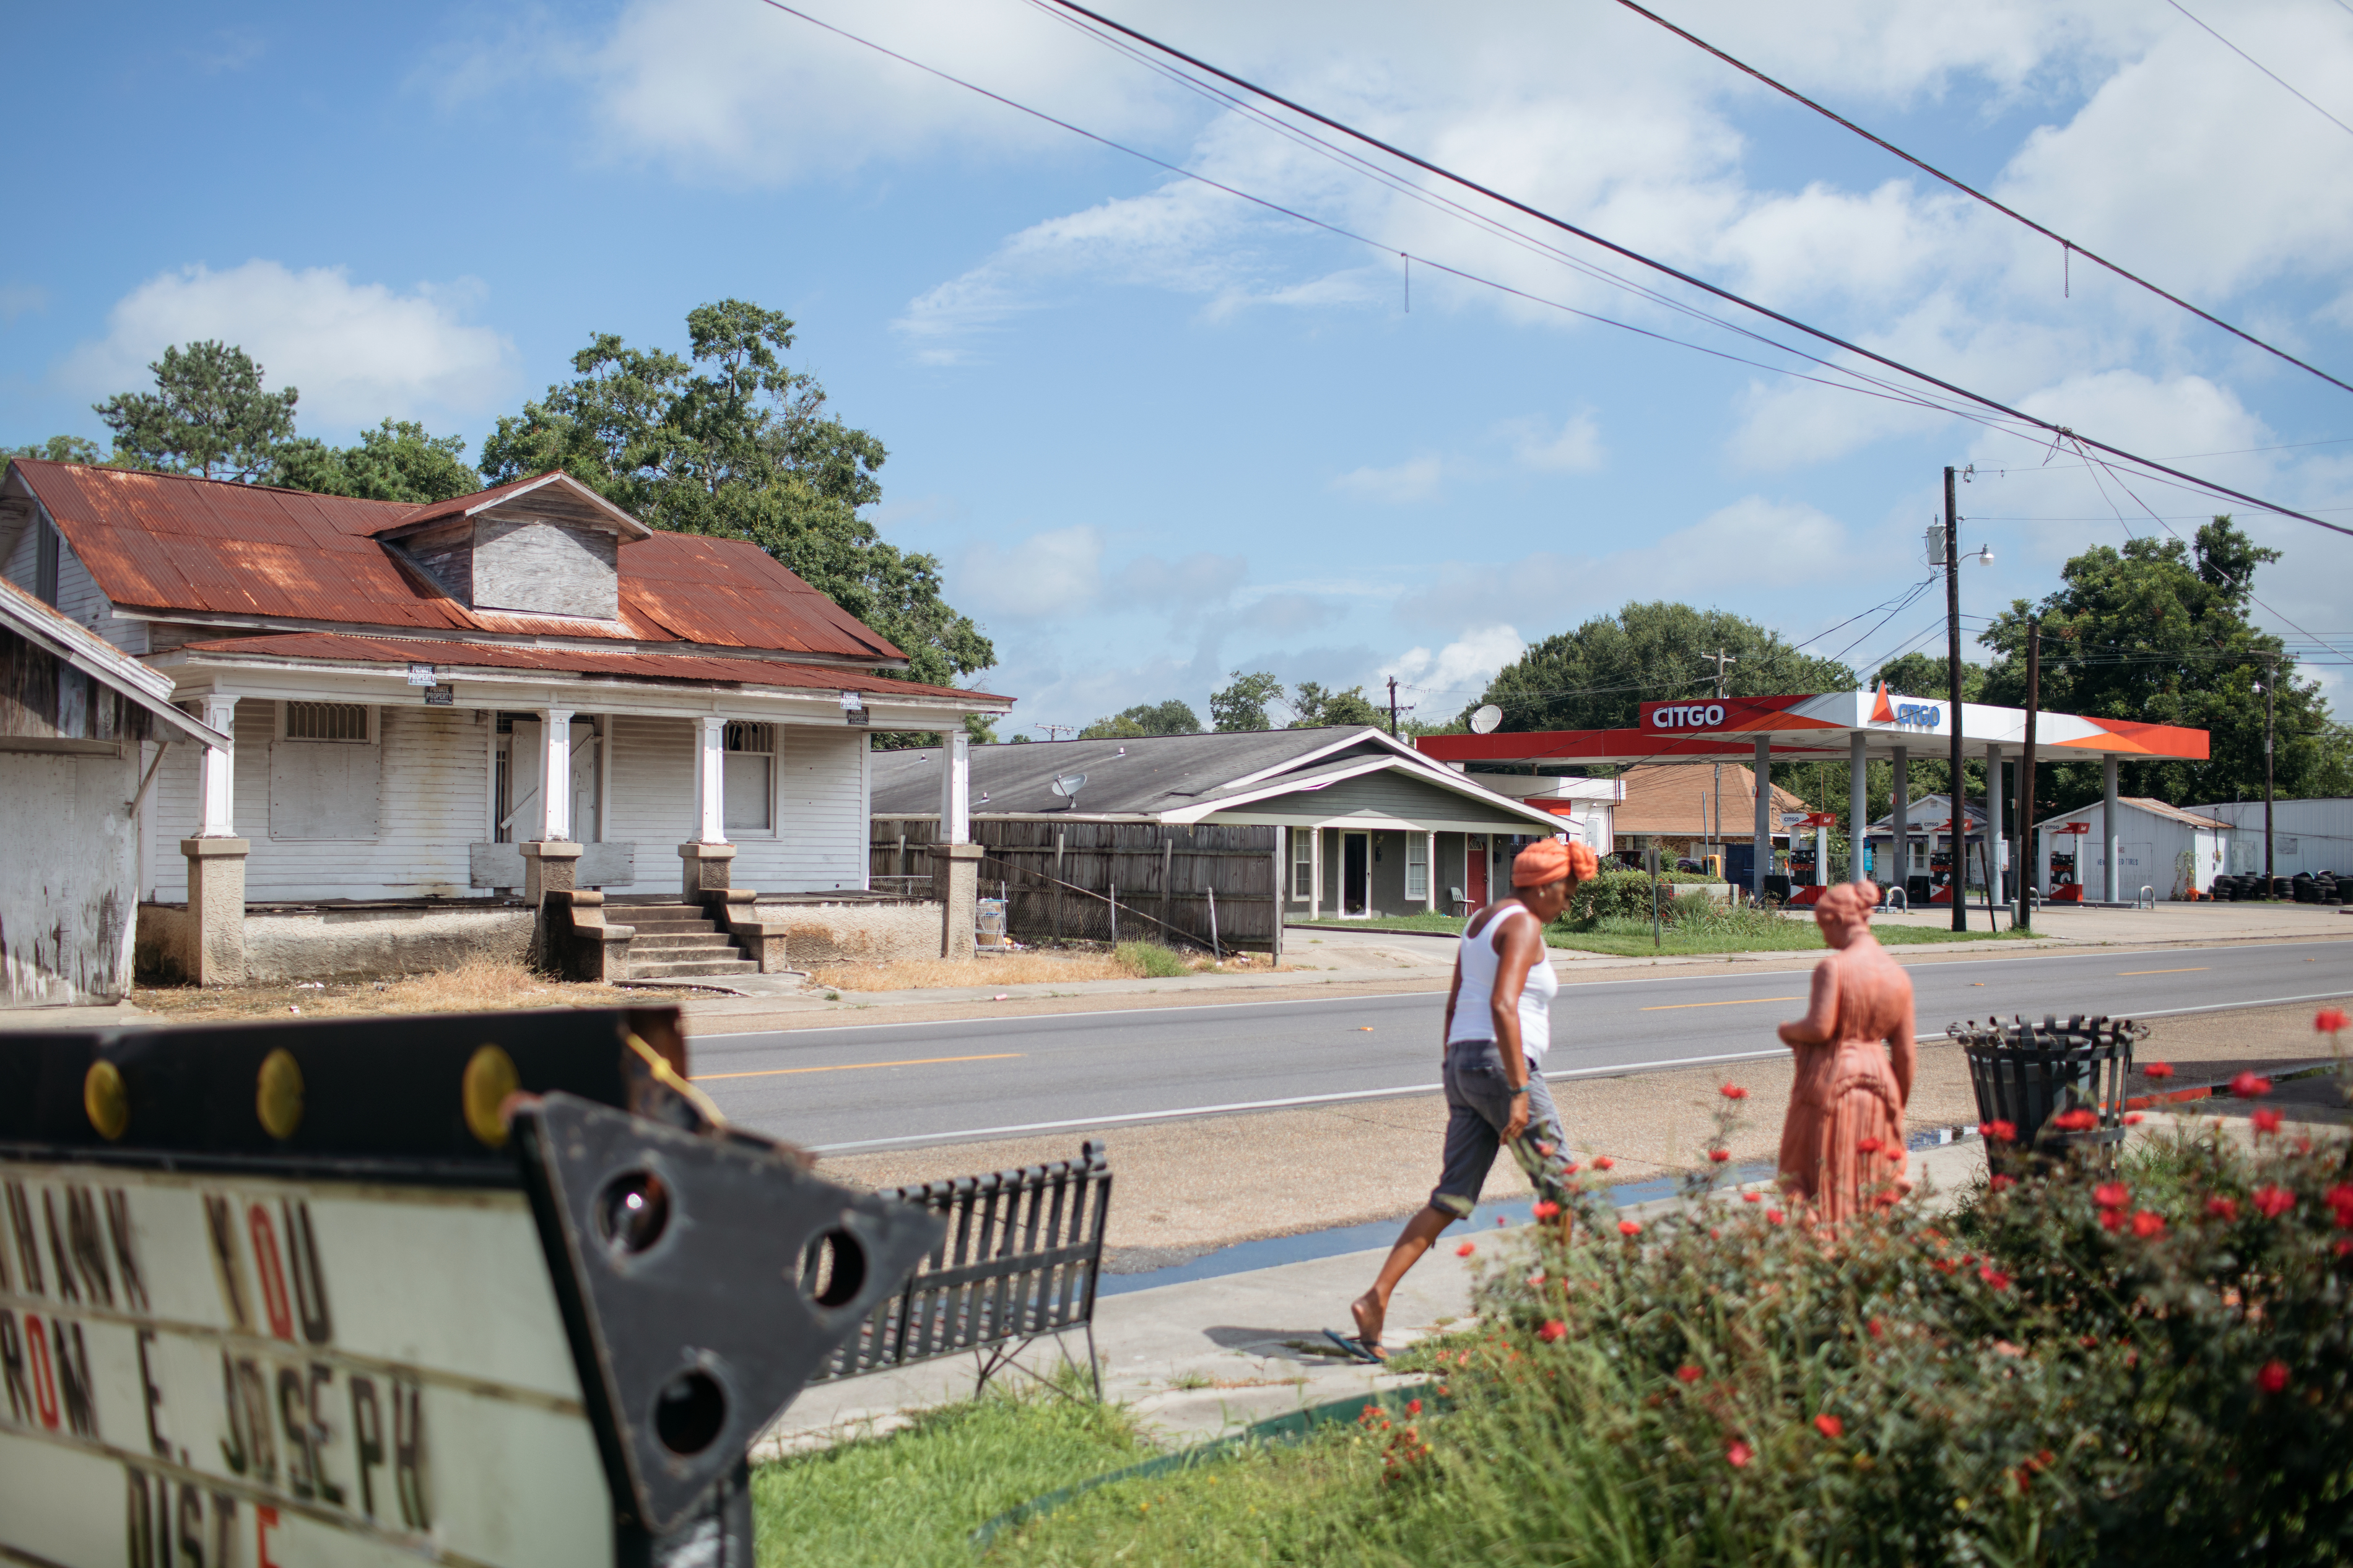 St. Martinville, Louisiana. Photos by Annie Flanagan/Washington Post via Getty Images.